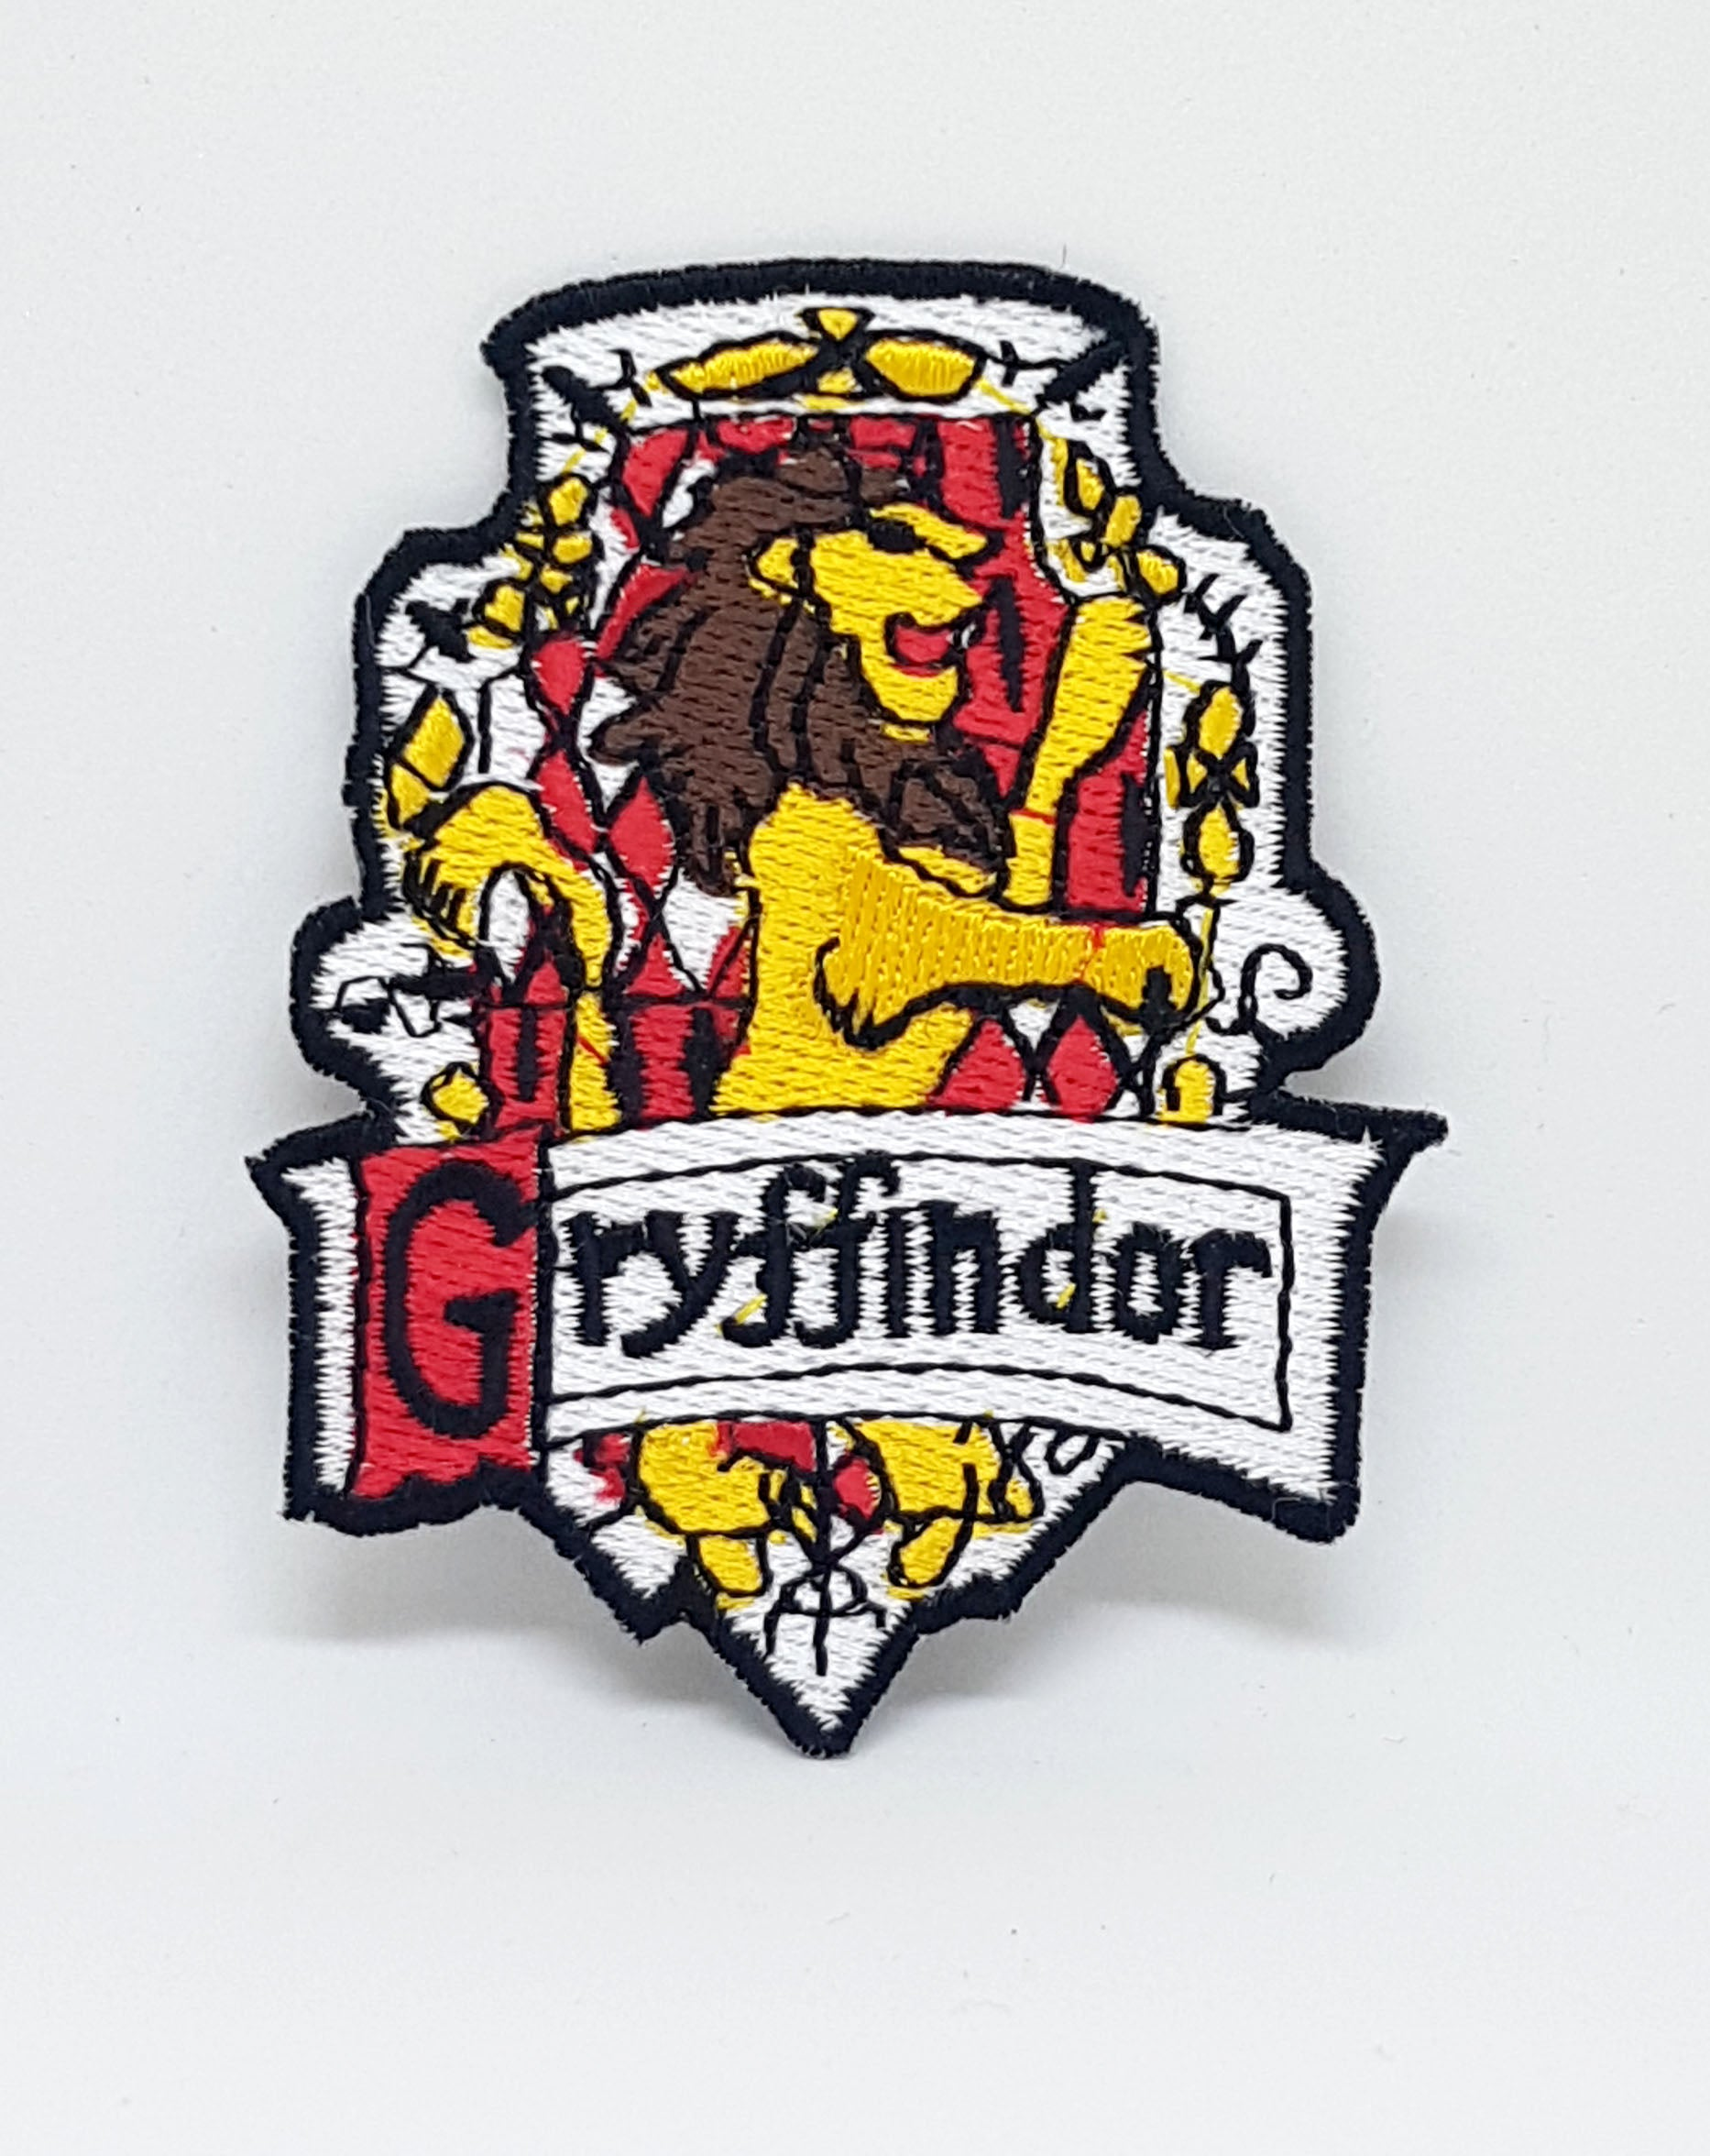 Harry Potter Gryffindor-A Iron Sew on Embroidered Patch - Patches-Badges